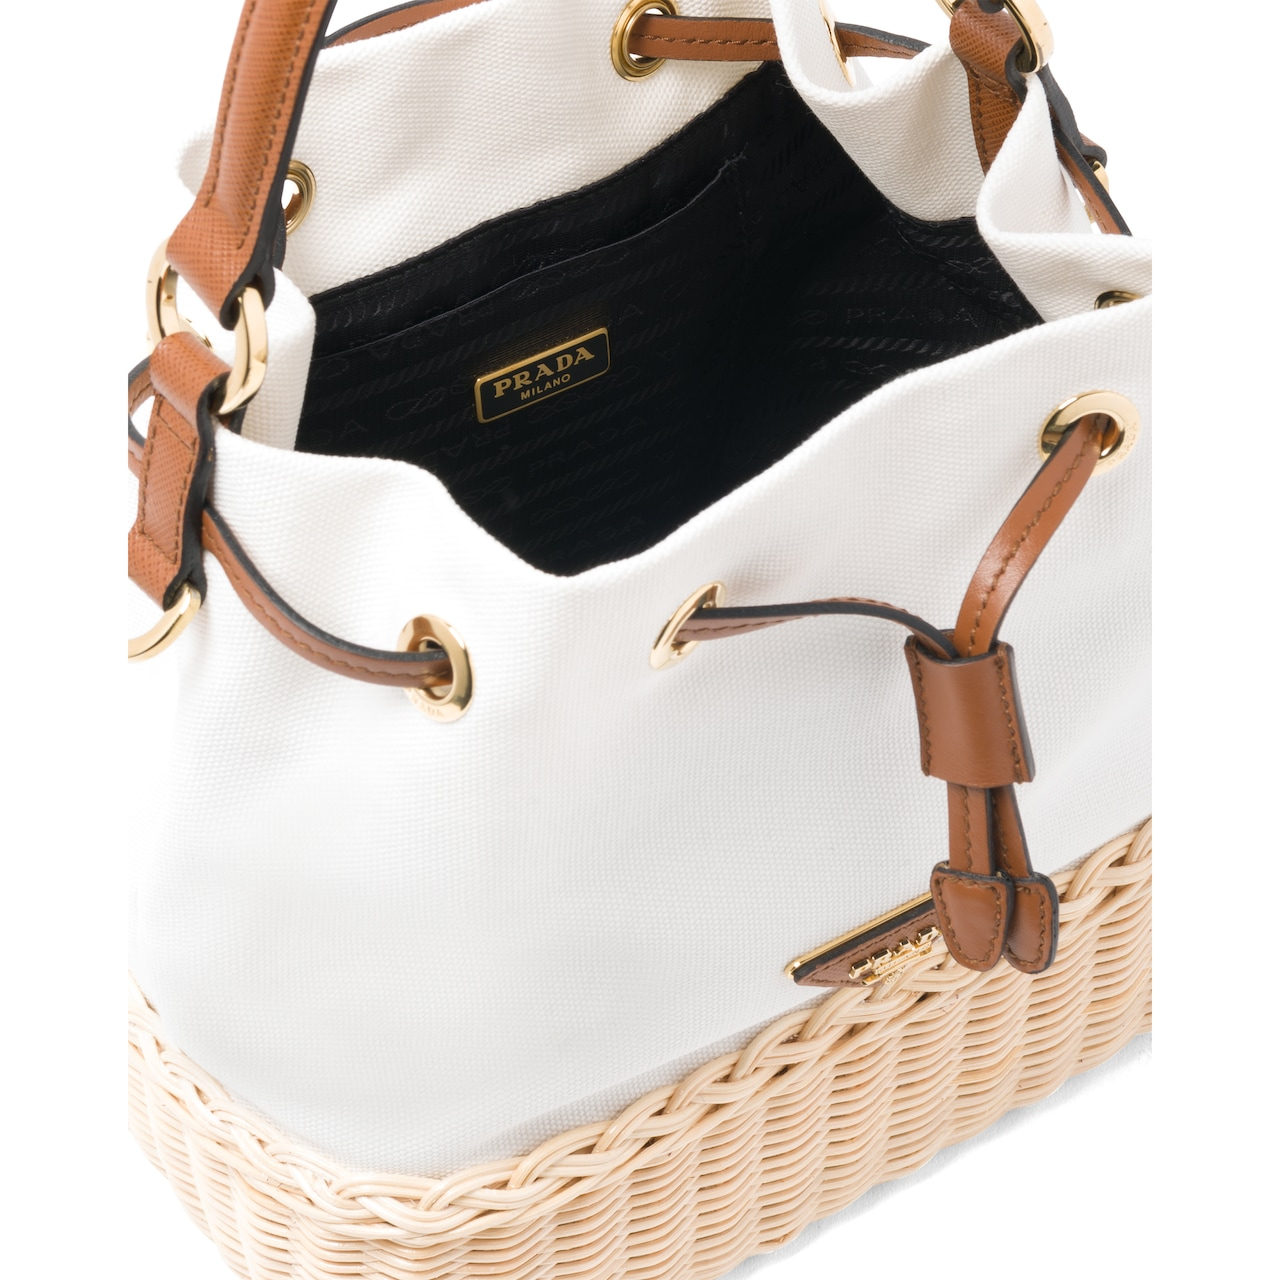 Prada Prada Plage wicker and canvas bucket bag 5